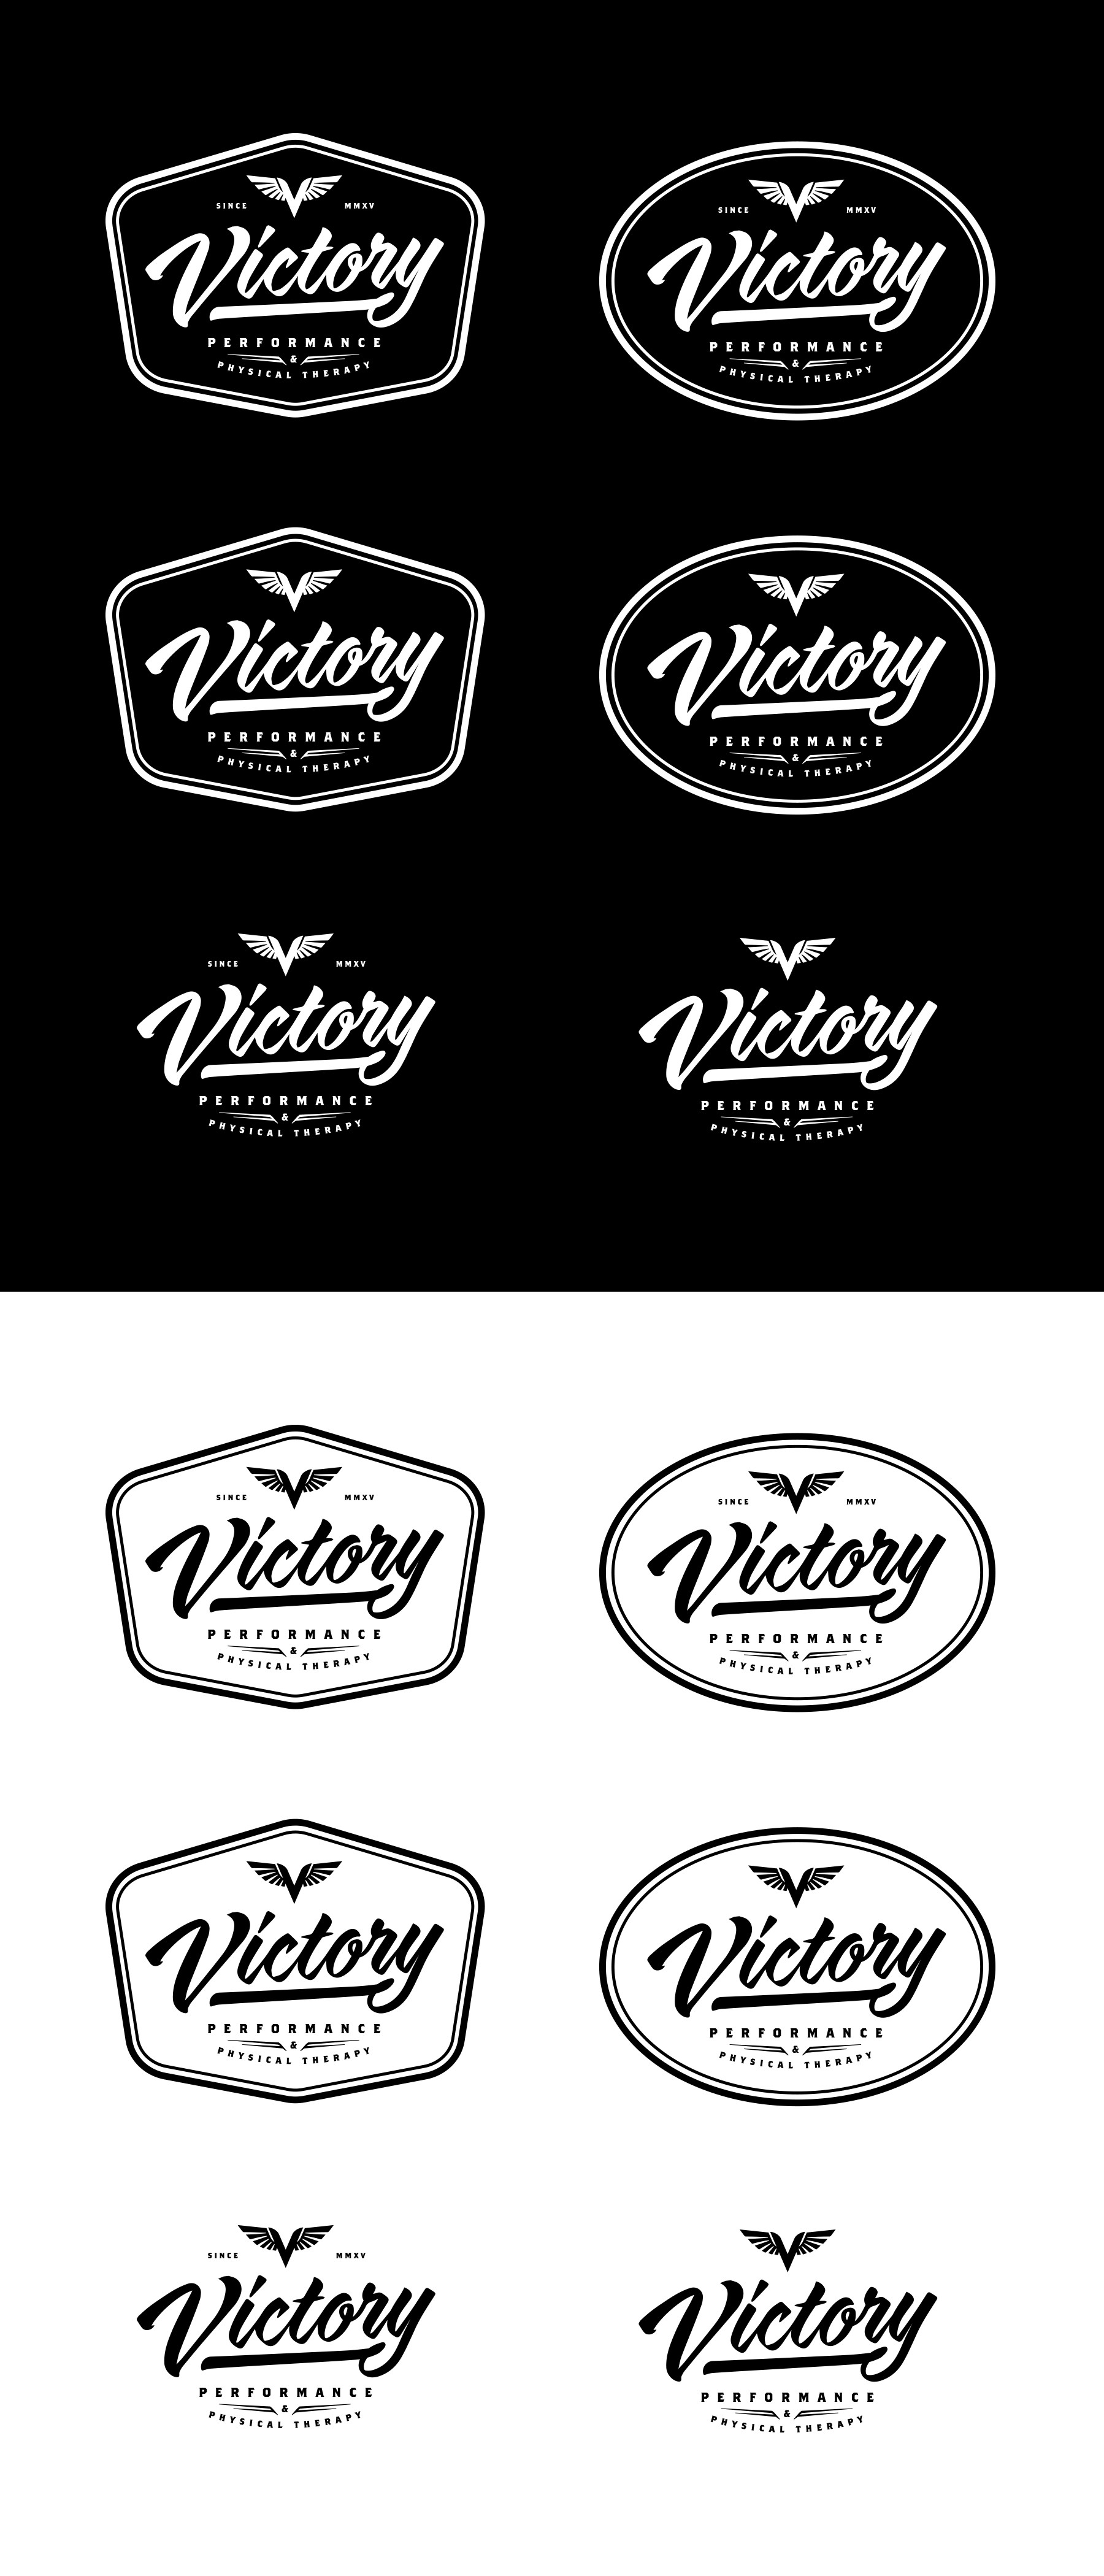 Show your strength and create a classic logo for Victory Performance and Physical Therapy!